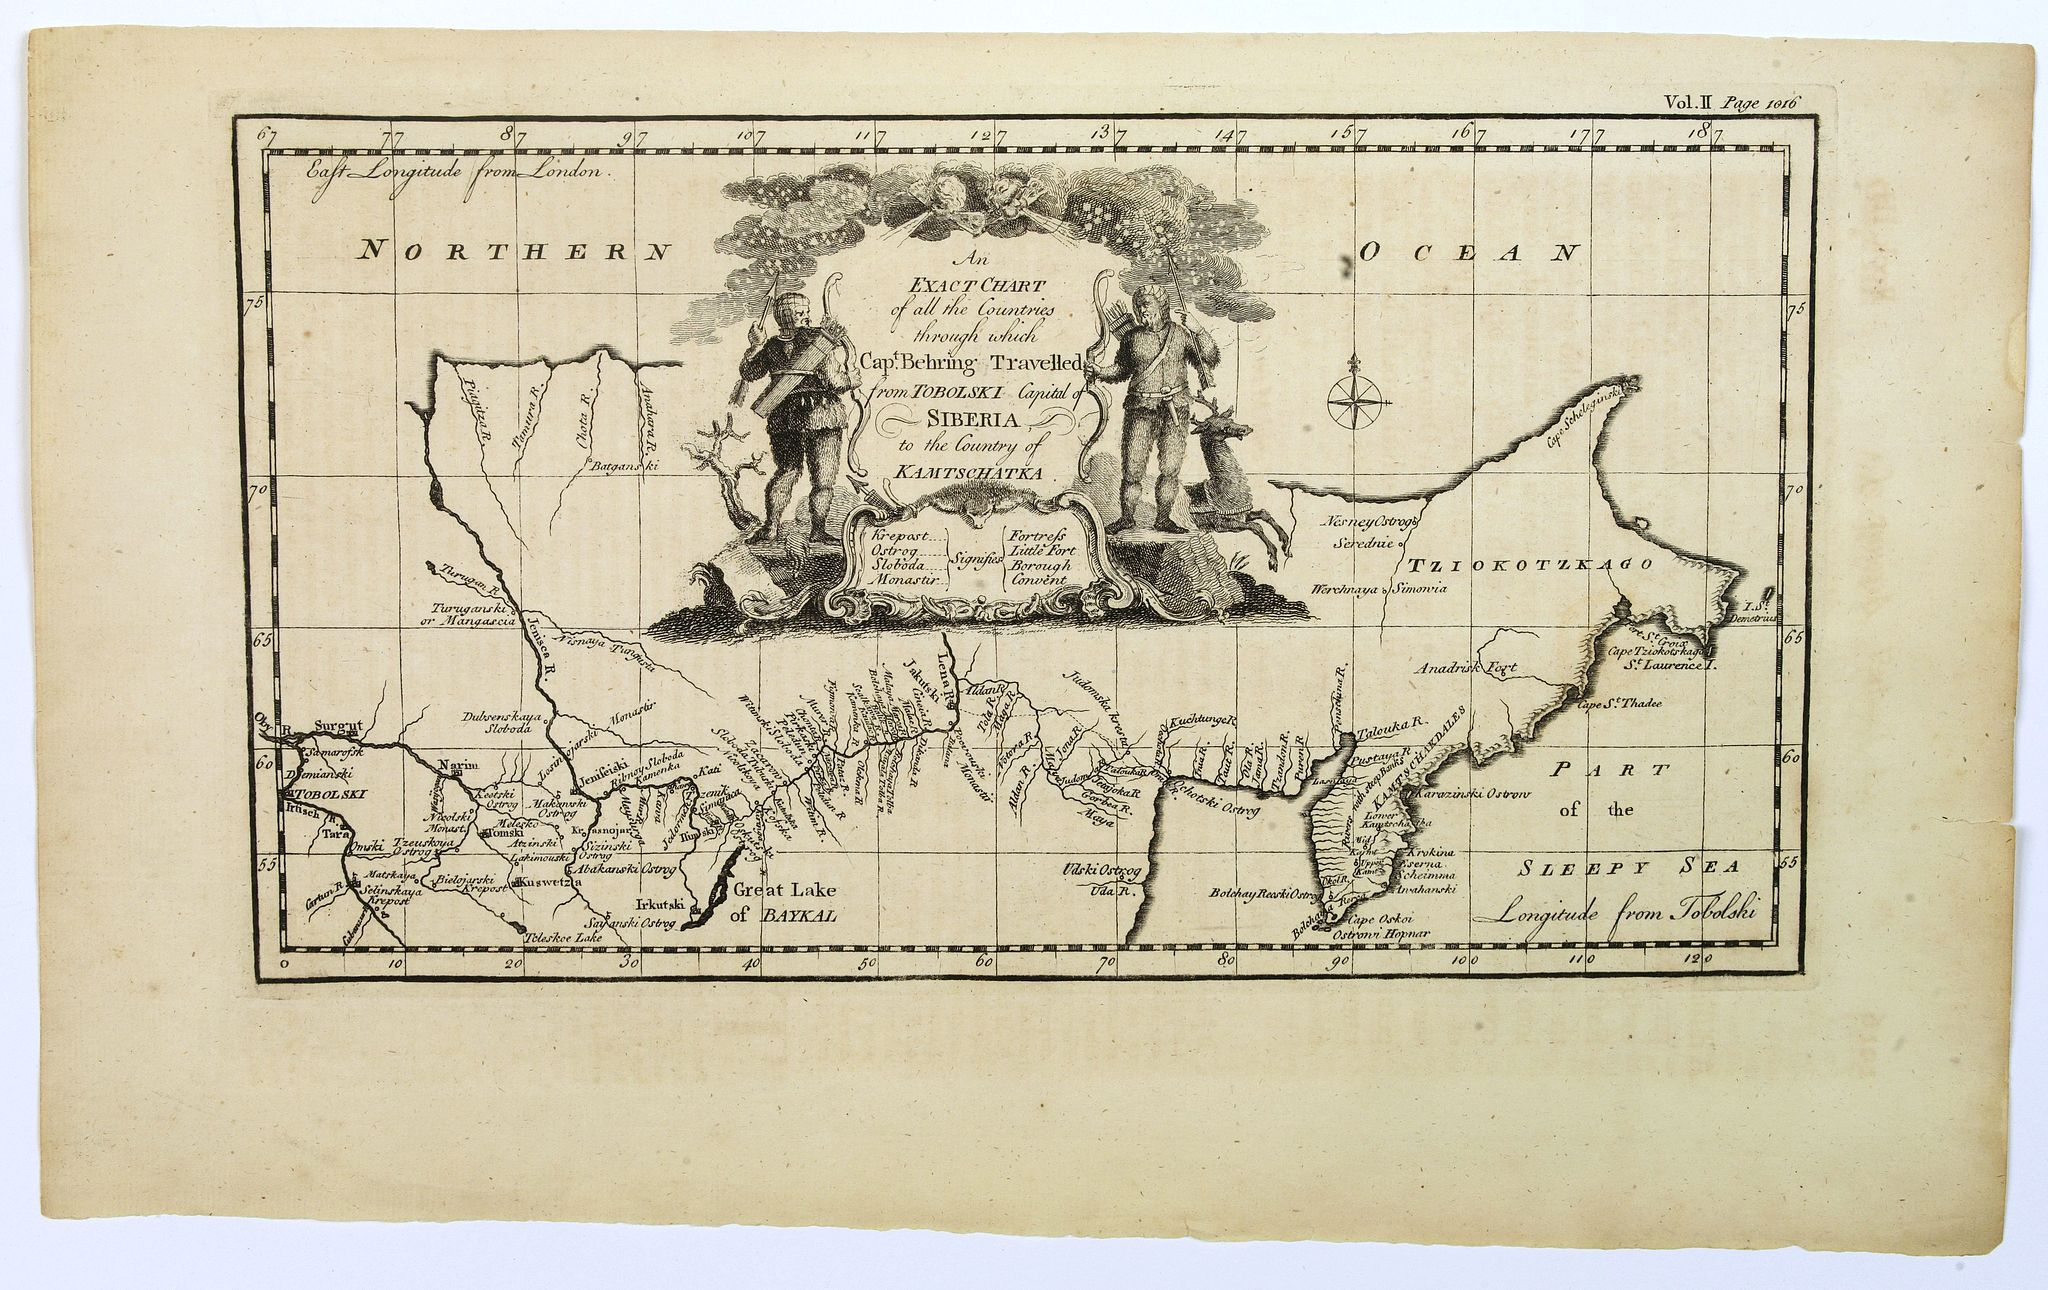 BOWEN, E. -  An exact chart of the countries through wich Capt. Behring travelled from Tobolsky capital of Siberia ti the country of Kamtschatka.